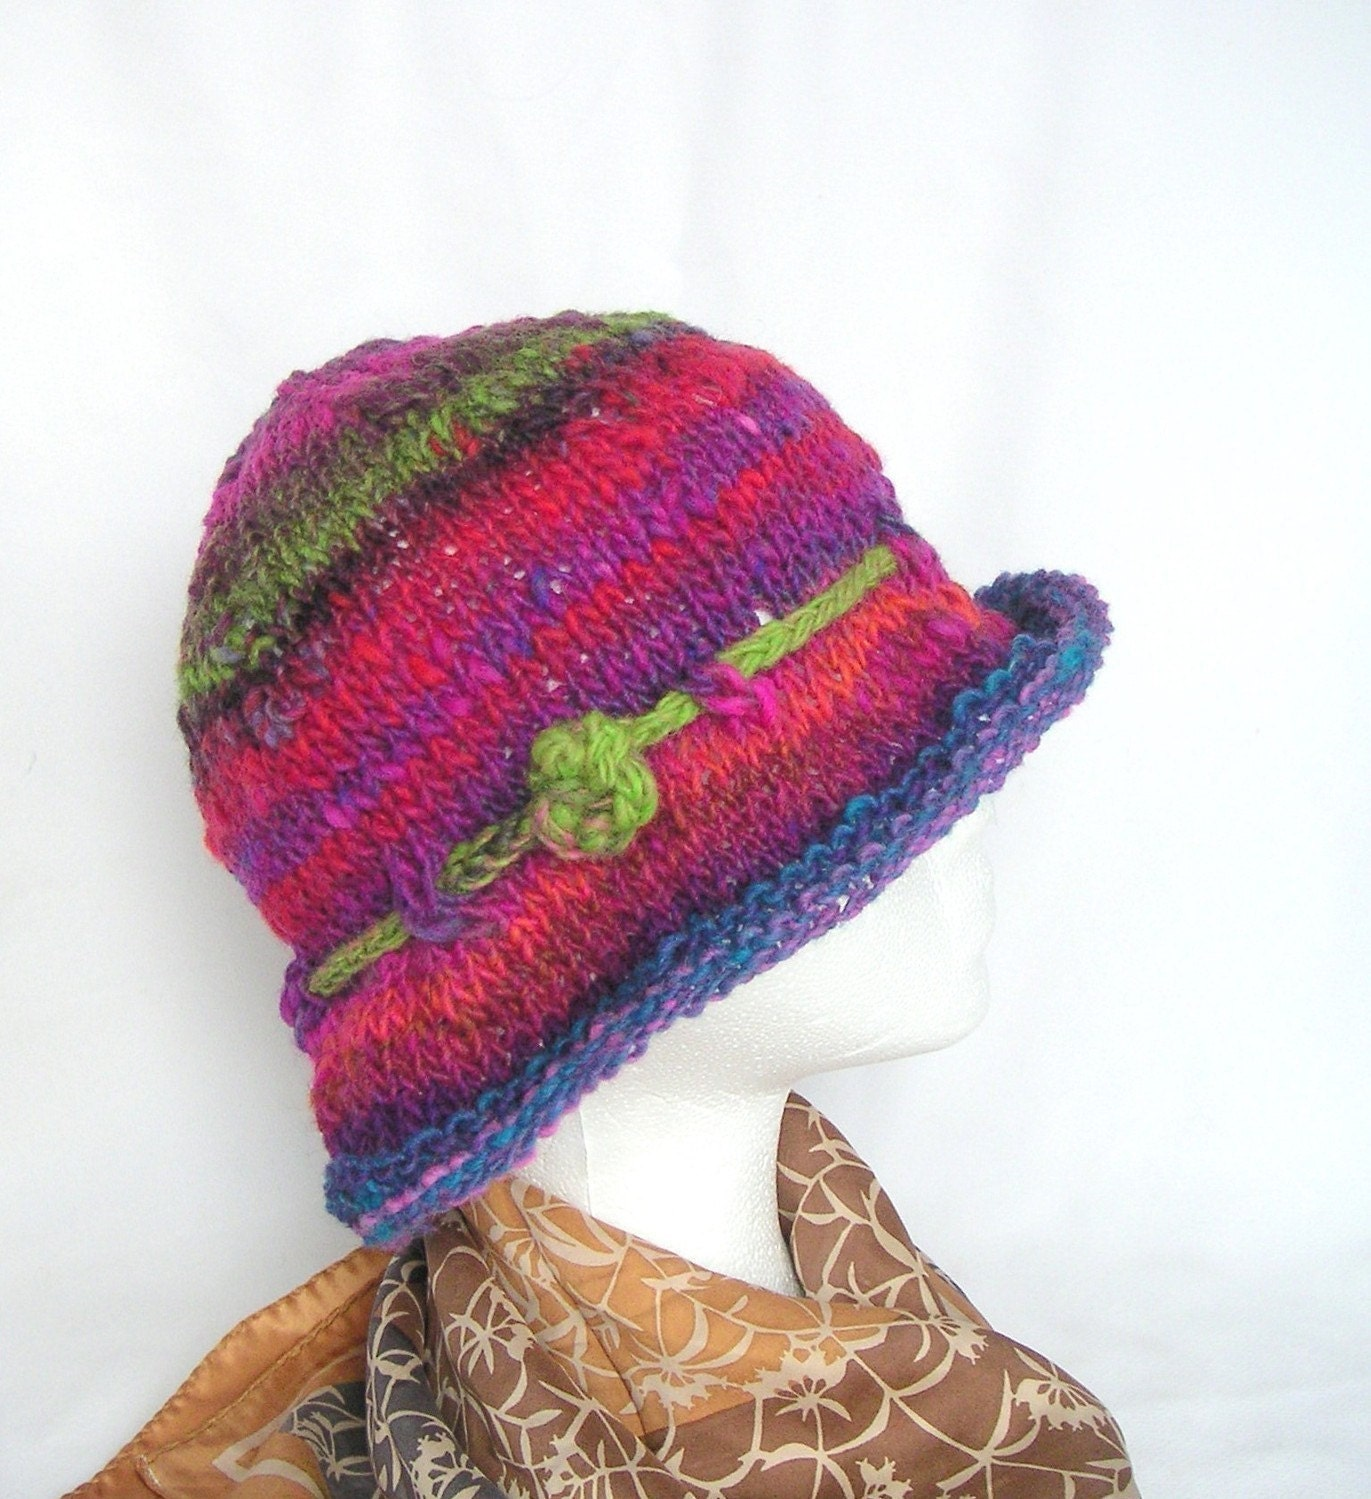 EASY KNITTING PATTERNS FOR HATS   Free Patterns